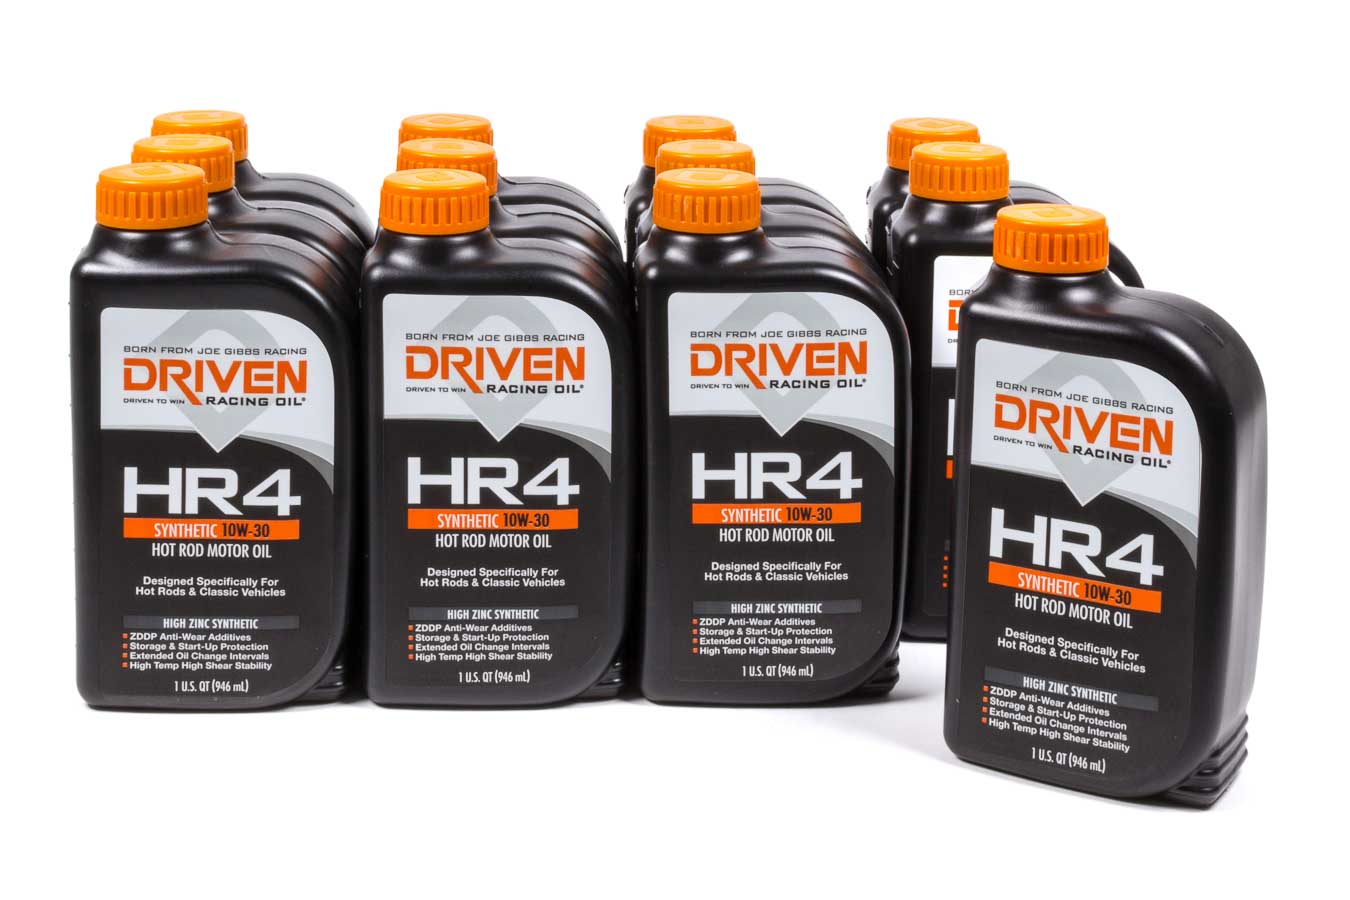 hight resolution of hr4 12pk 10w30 syntheti discontinued 1 17 discontinued